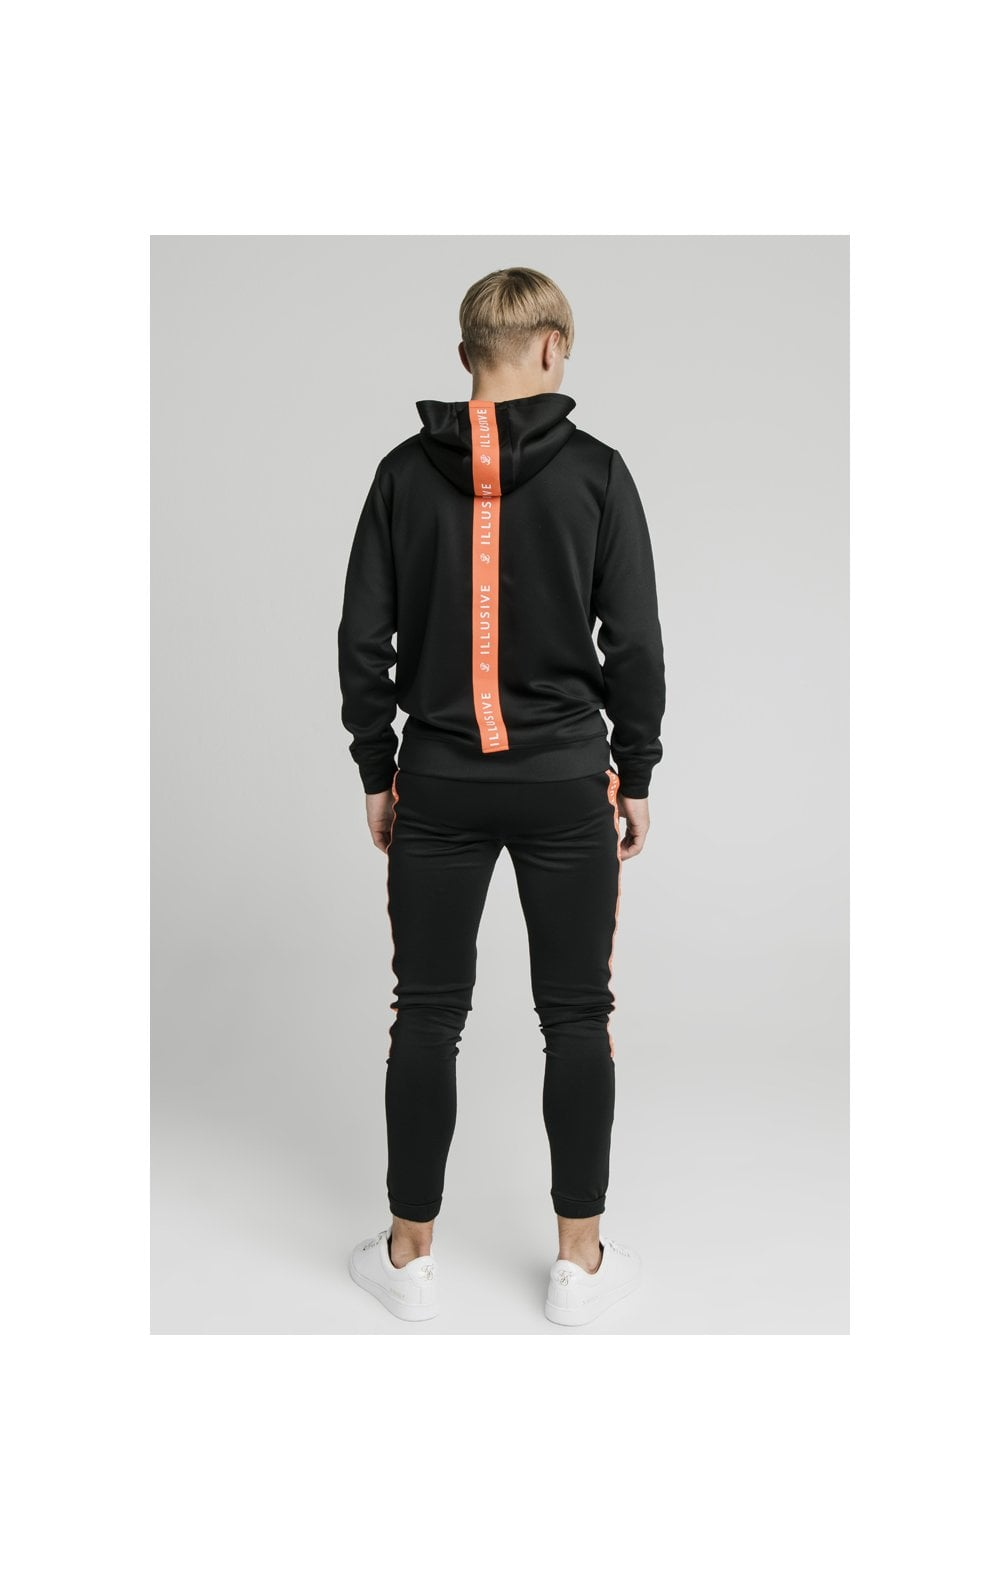 Illusive London Back Tape Zip Through Hoodie - Black (6)